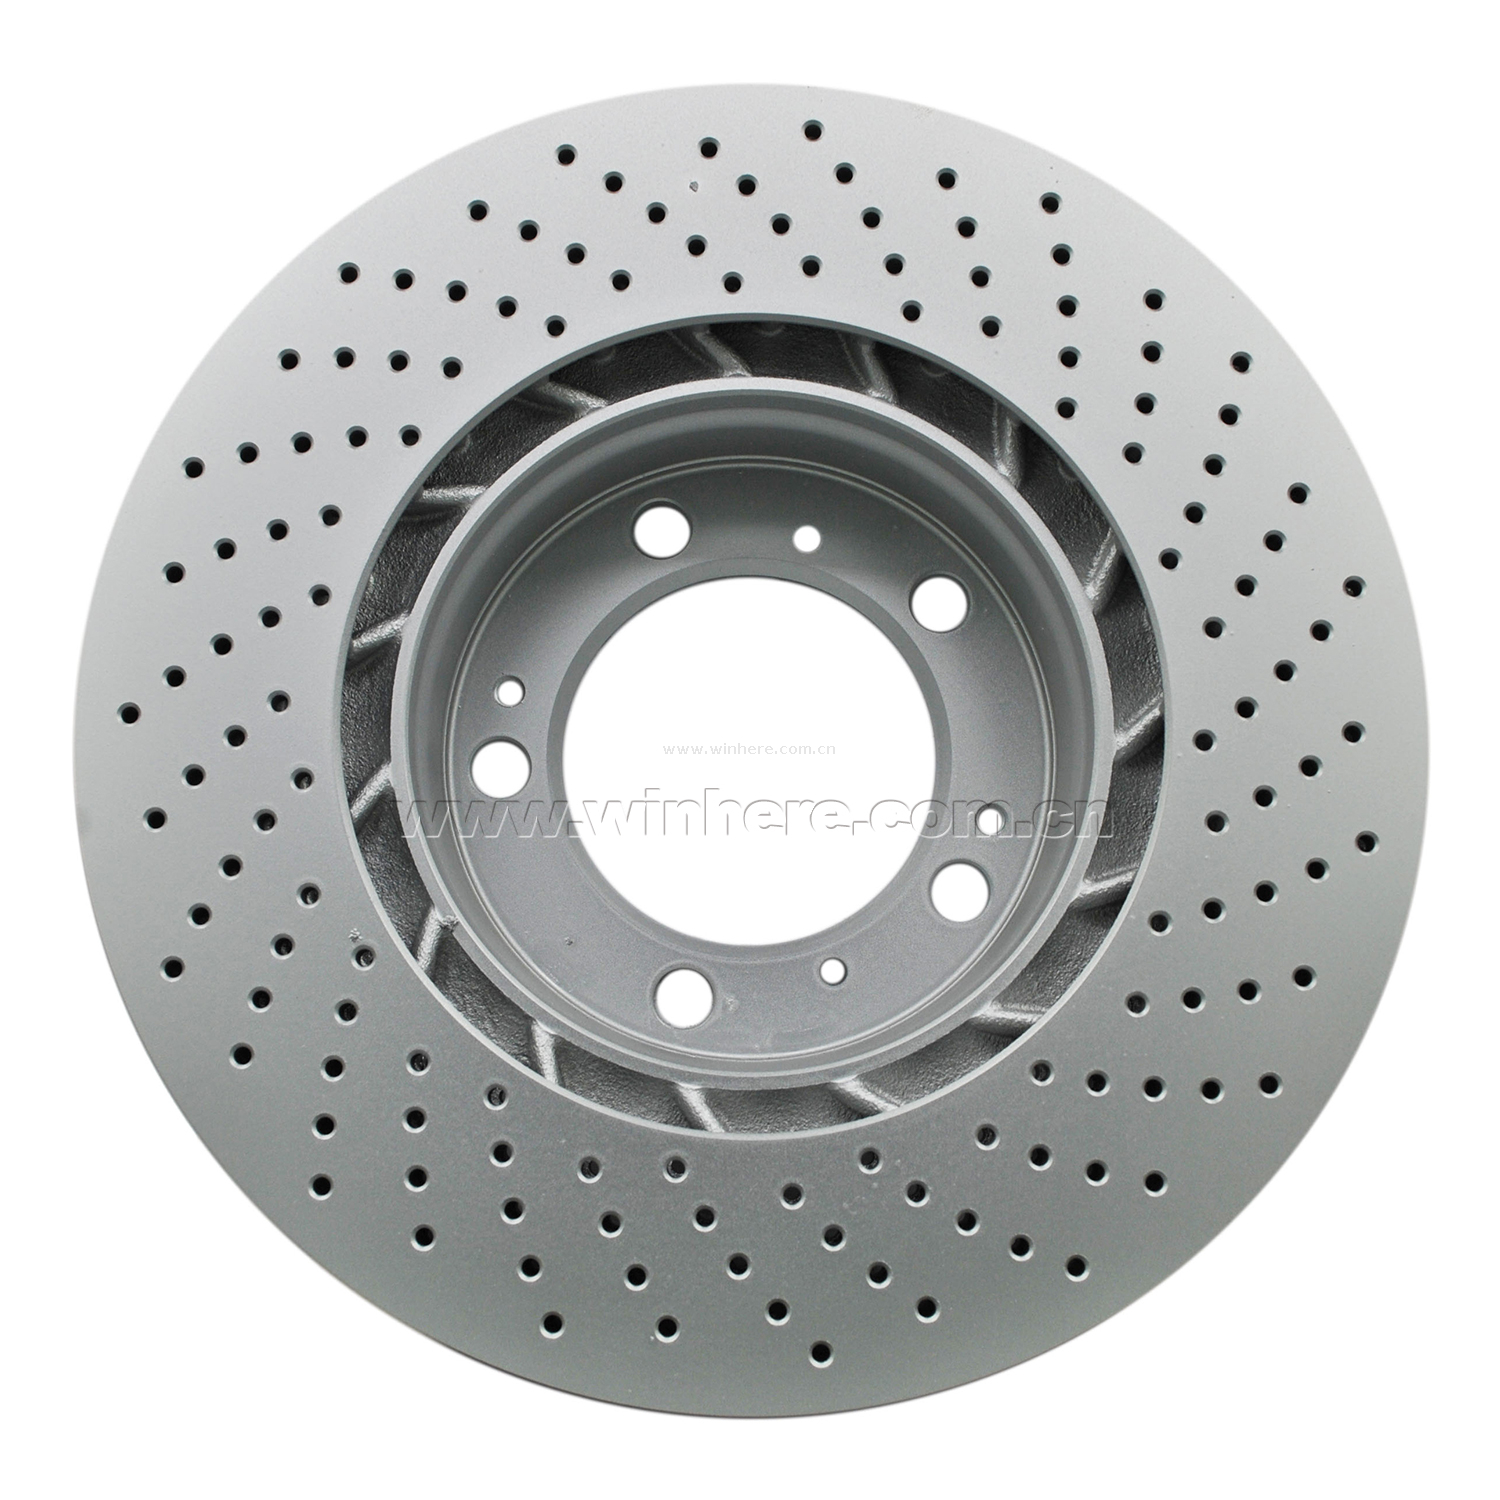 Coated Brake Disc for MERCEDES-BENZ Rear ECE R90